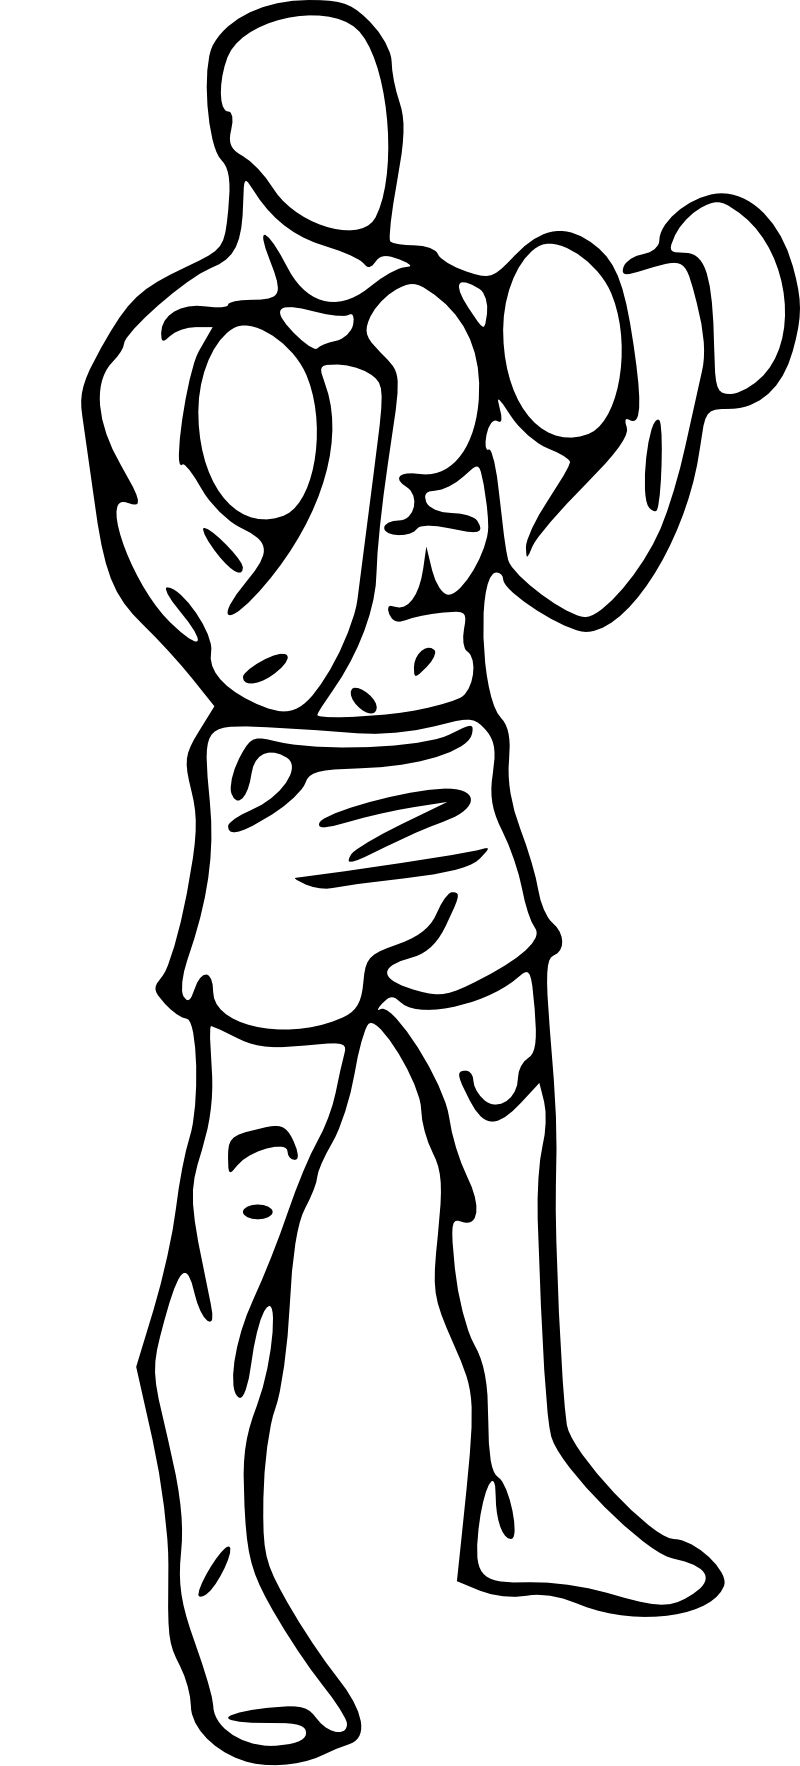 banner library Biceps at getdrawings com. Bicep drawing